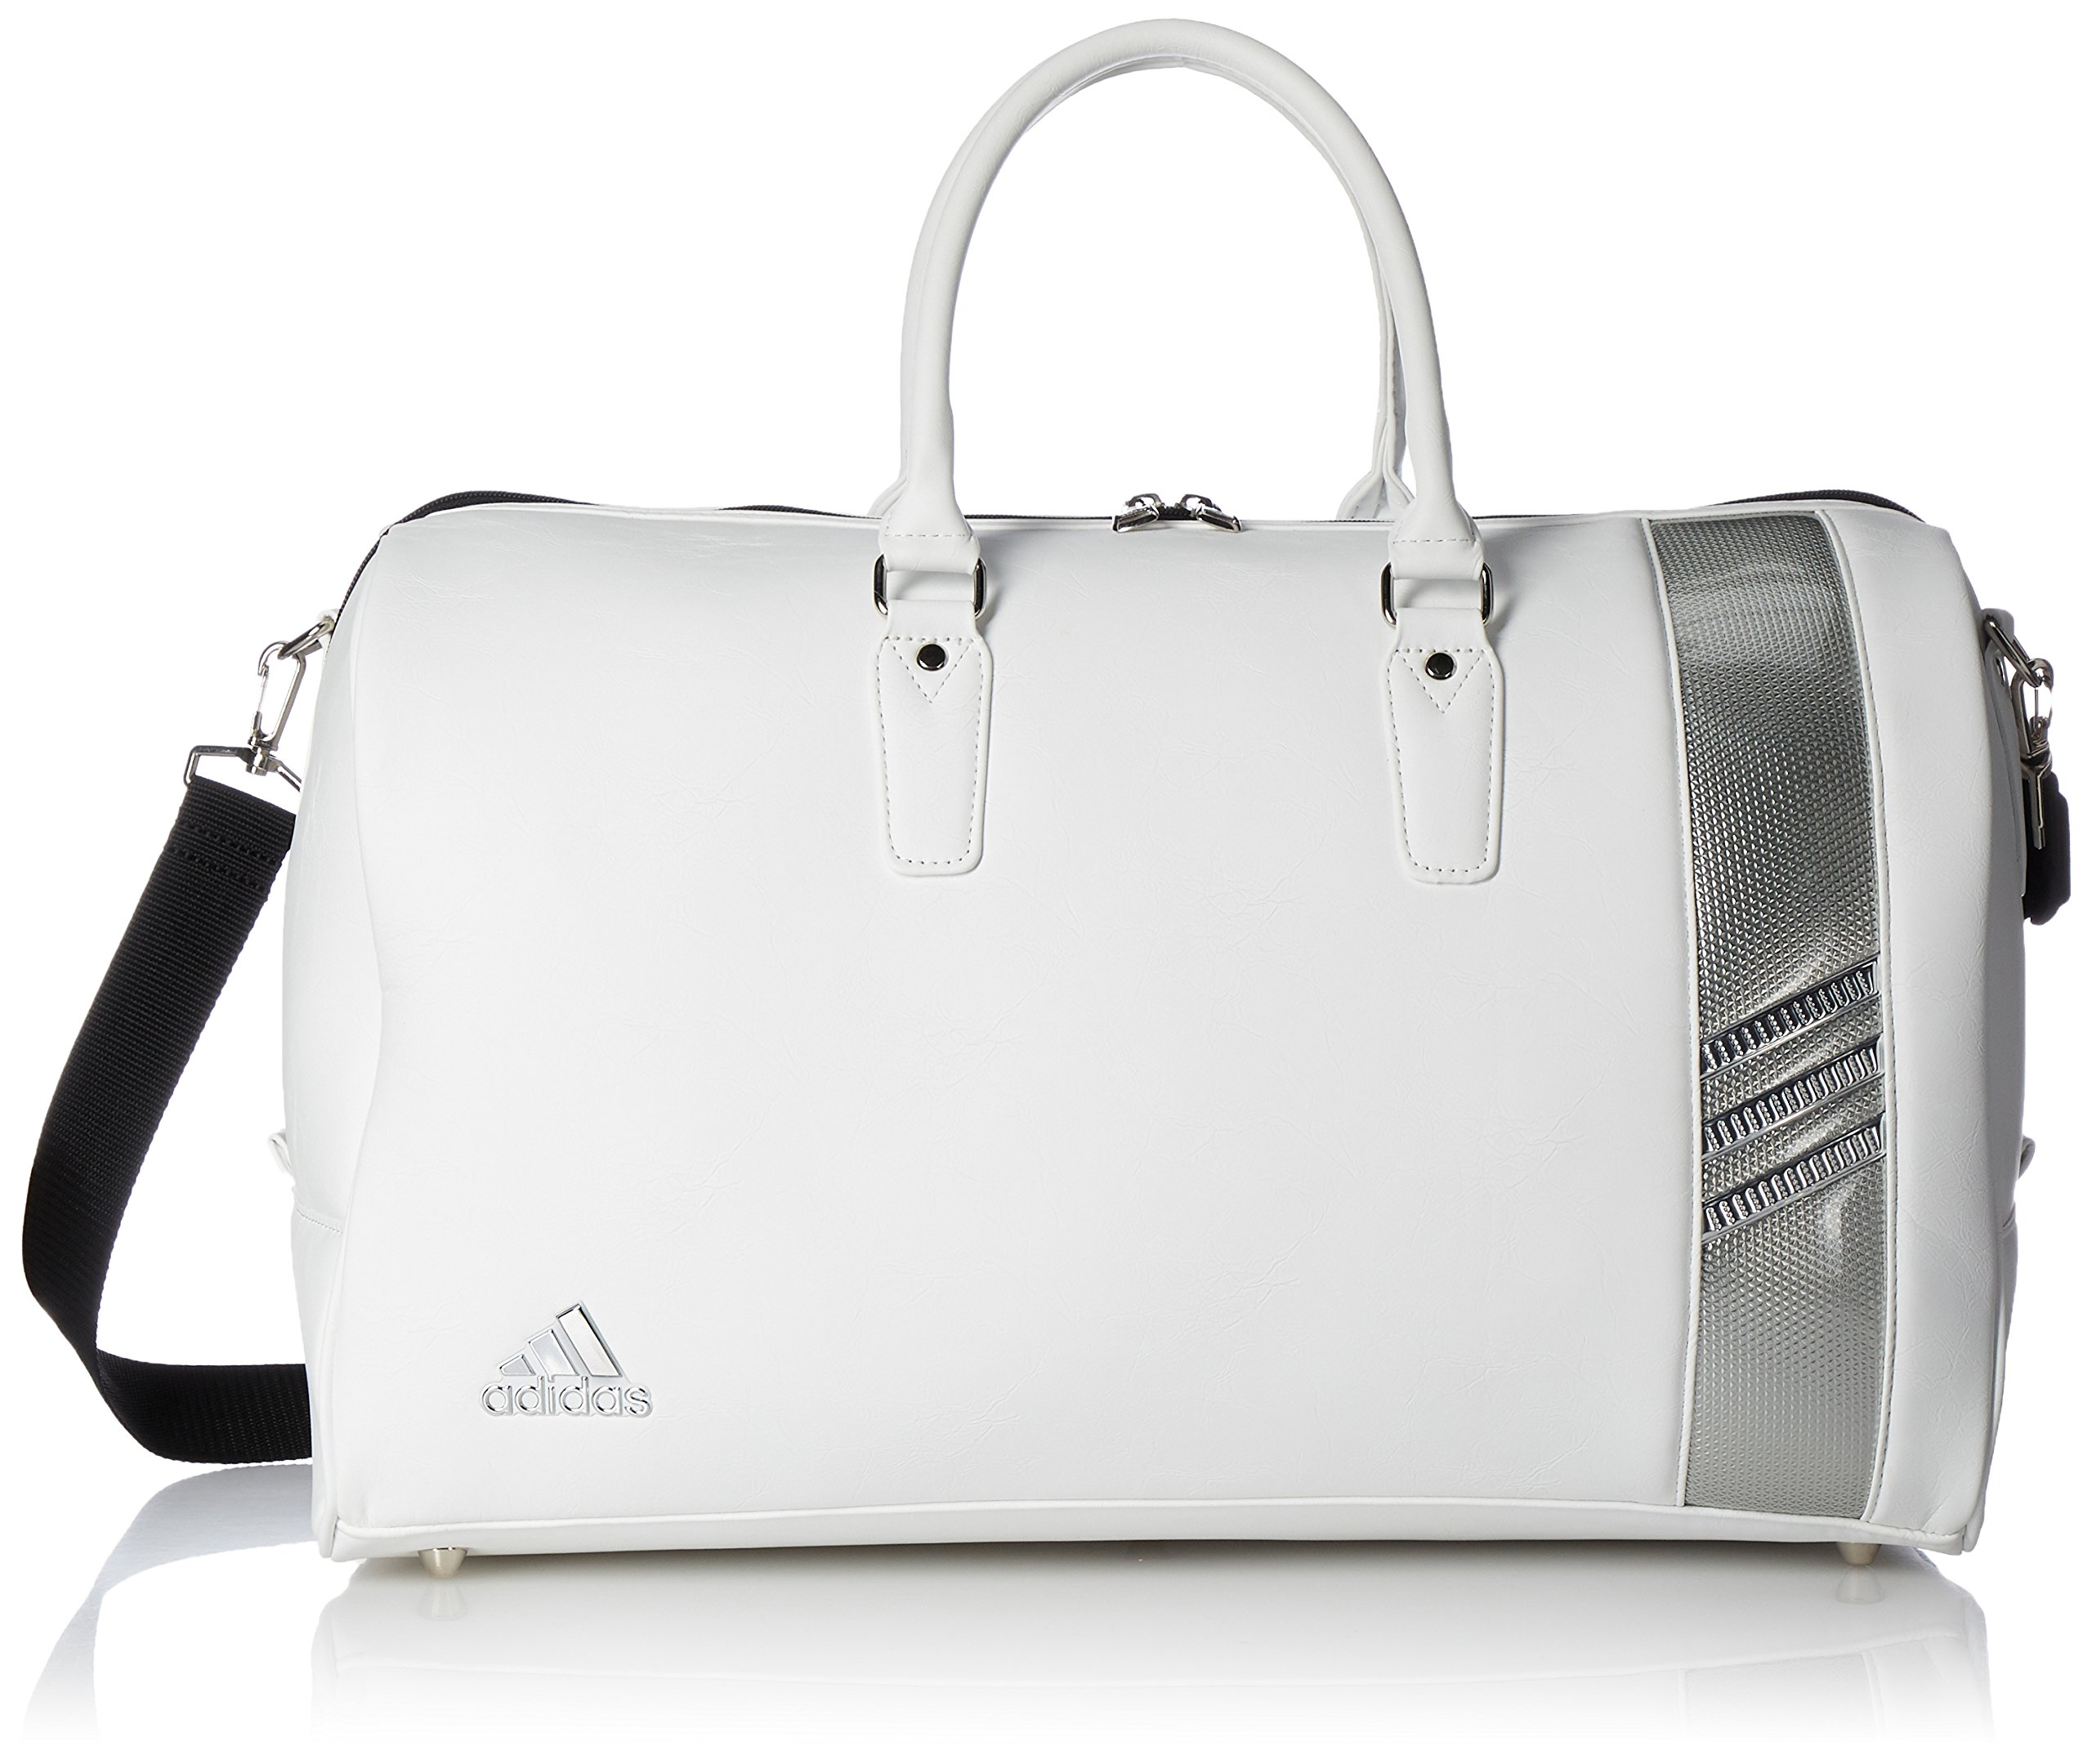 [Adidas Golf] Boston bag L50 × W24 × H 31 cm / with shoes in pocket / AWT 82 A92344 white / silver